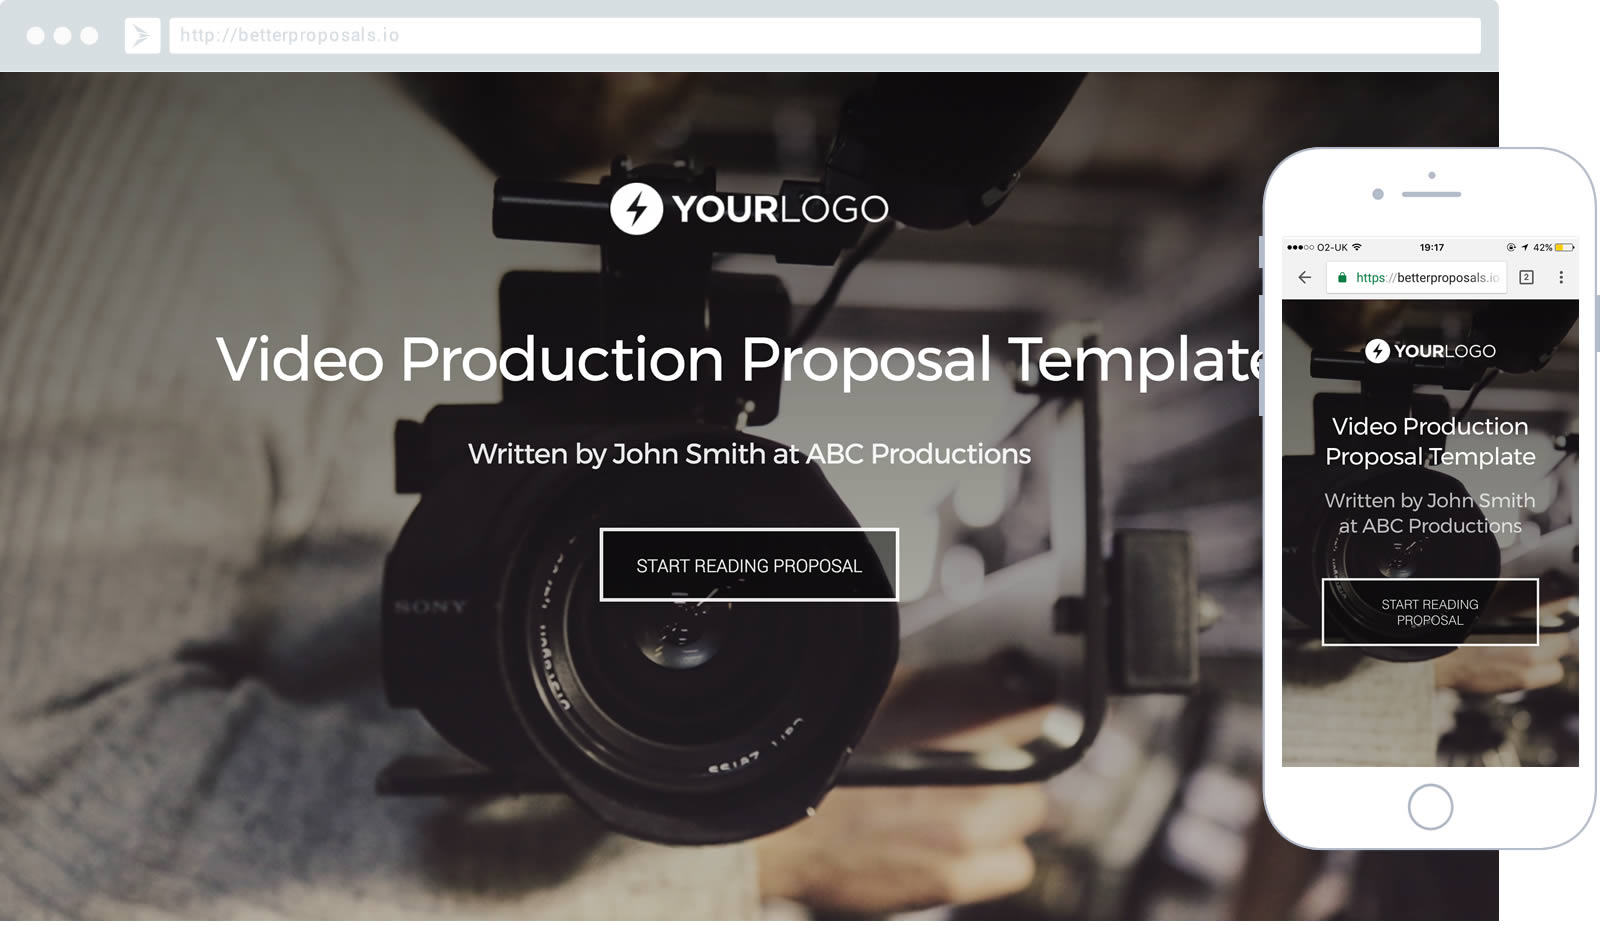 Free Video Production Proposal Template - Better Proposals